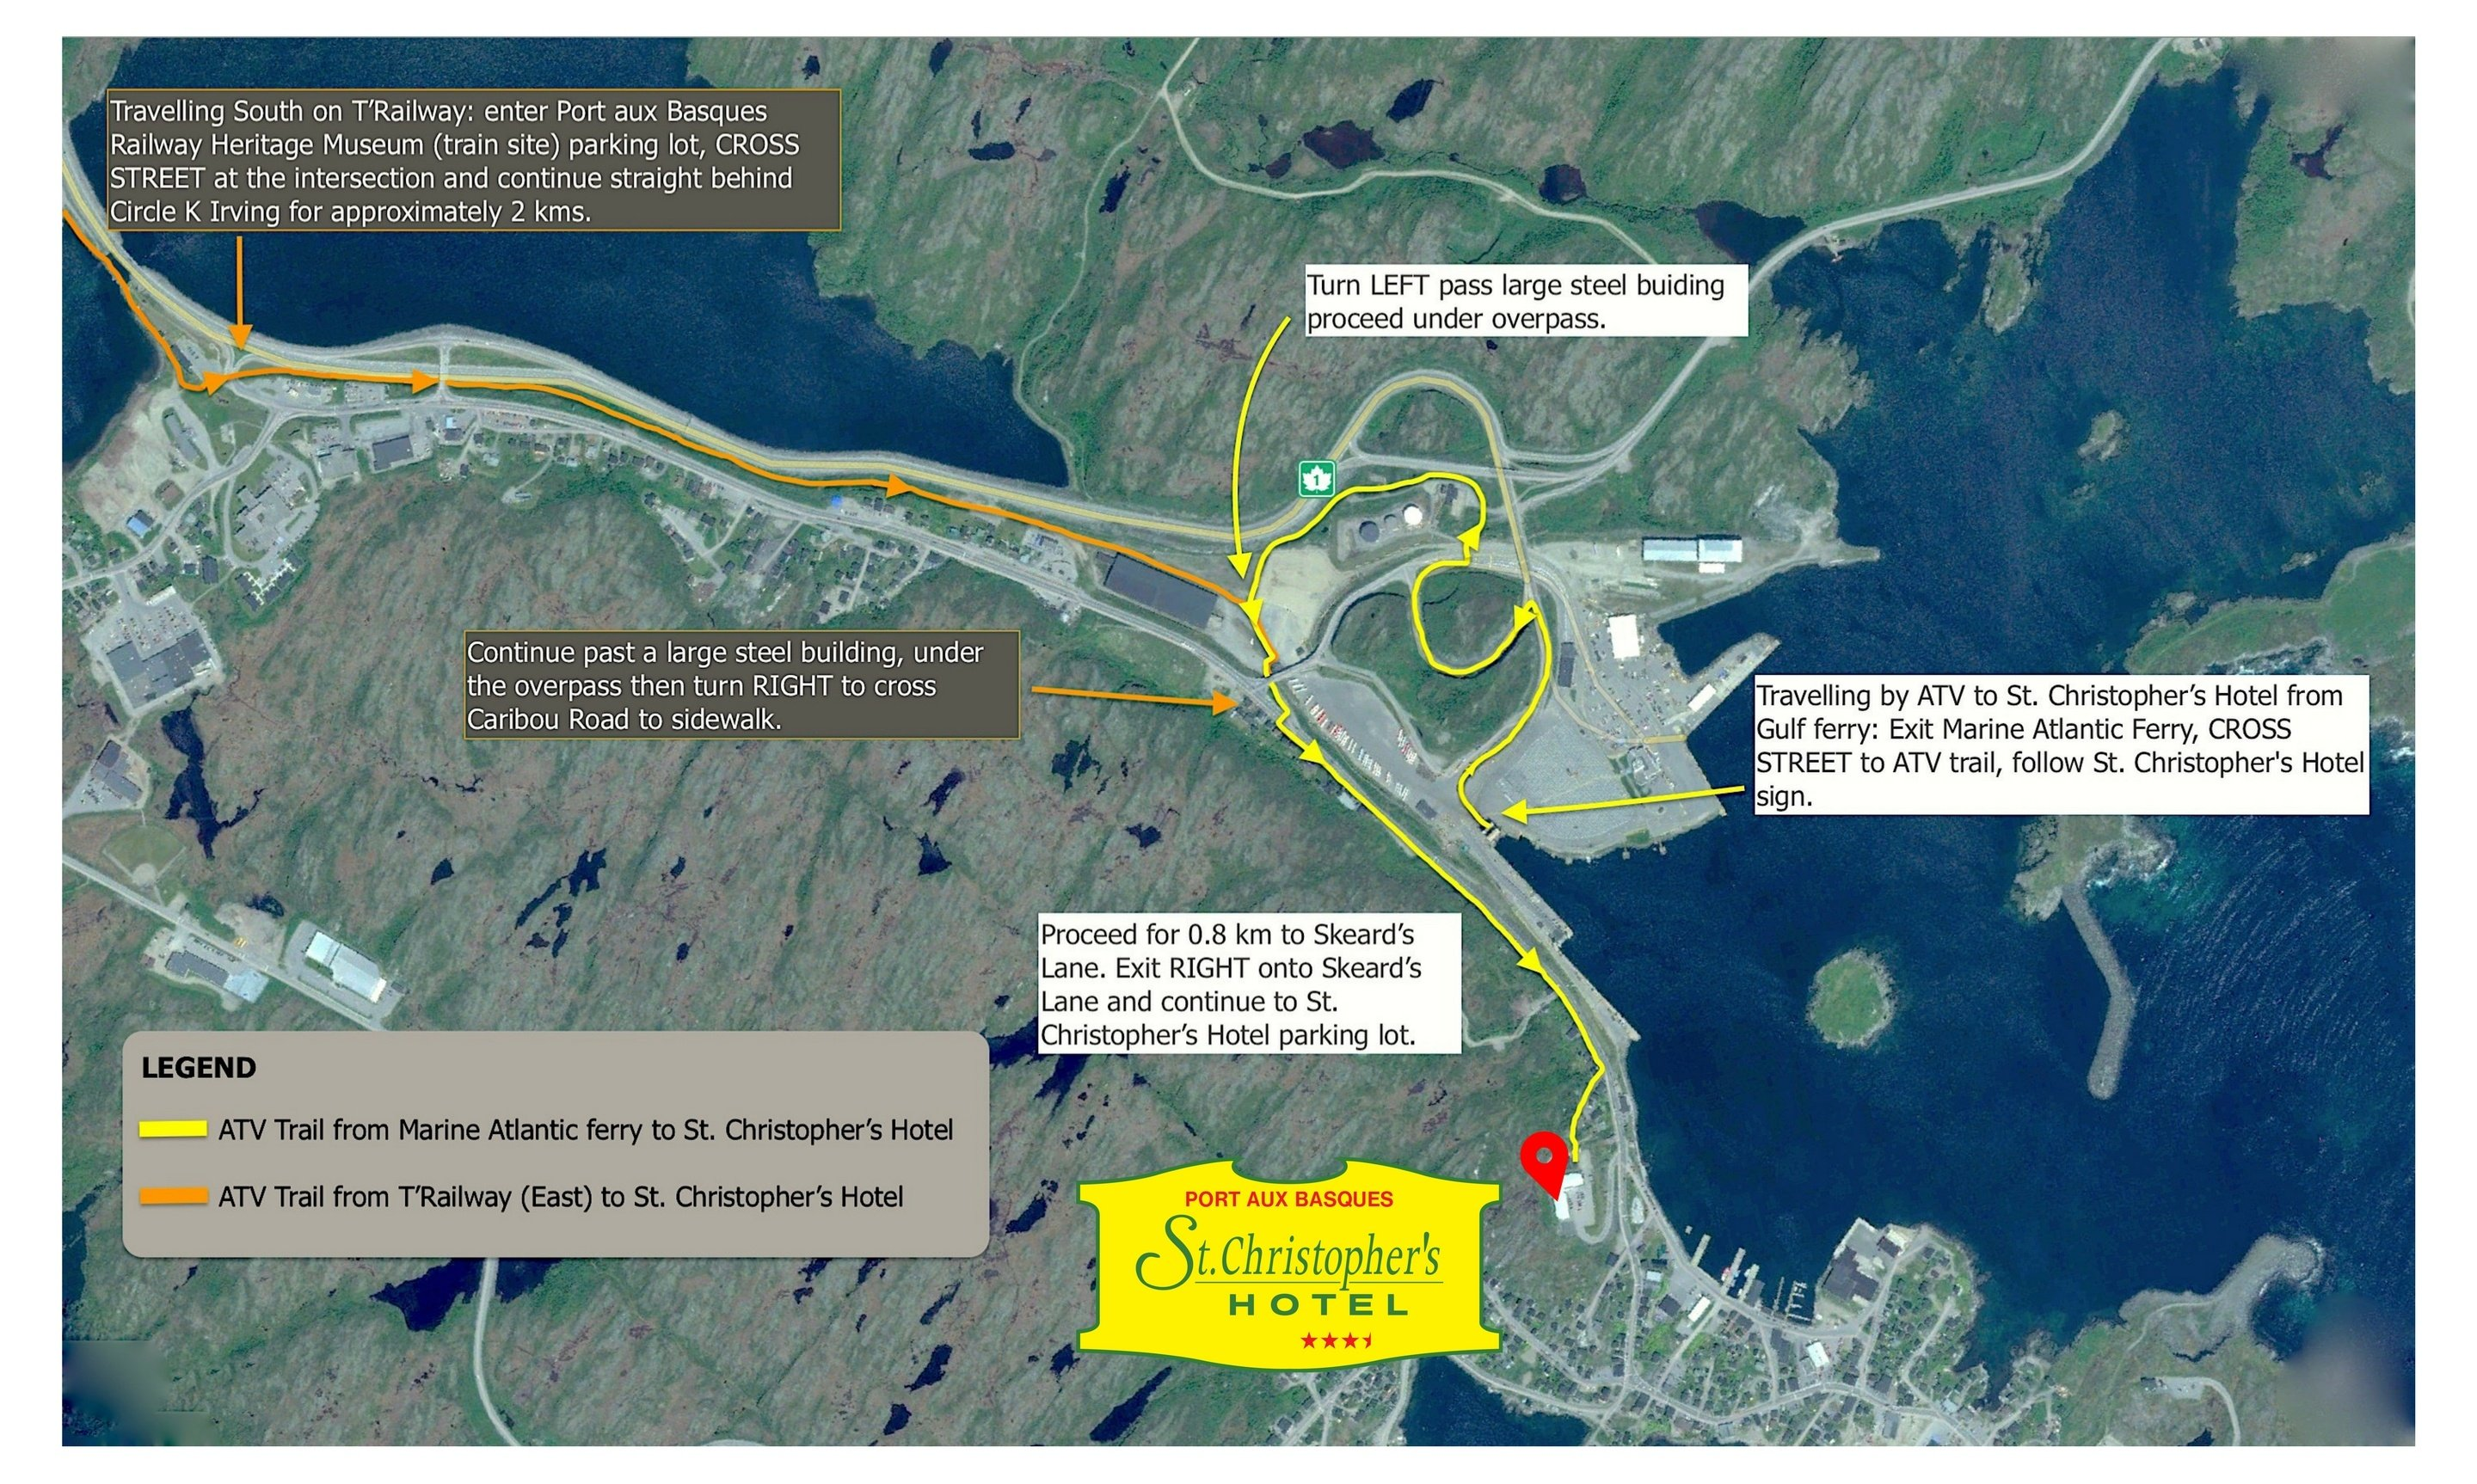 St-Christophers-Map-Feb-2018-ATV-Directions-from-Ferry-and-Trailway